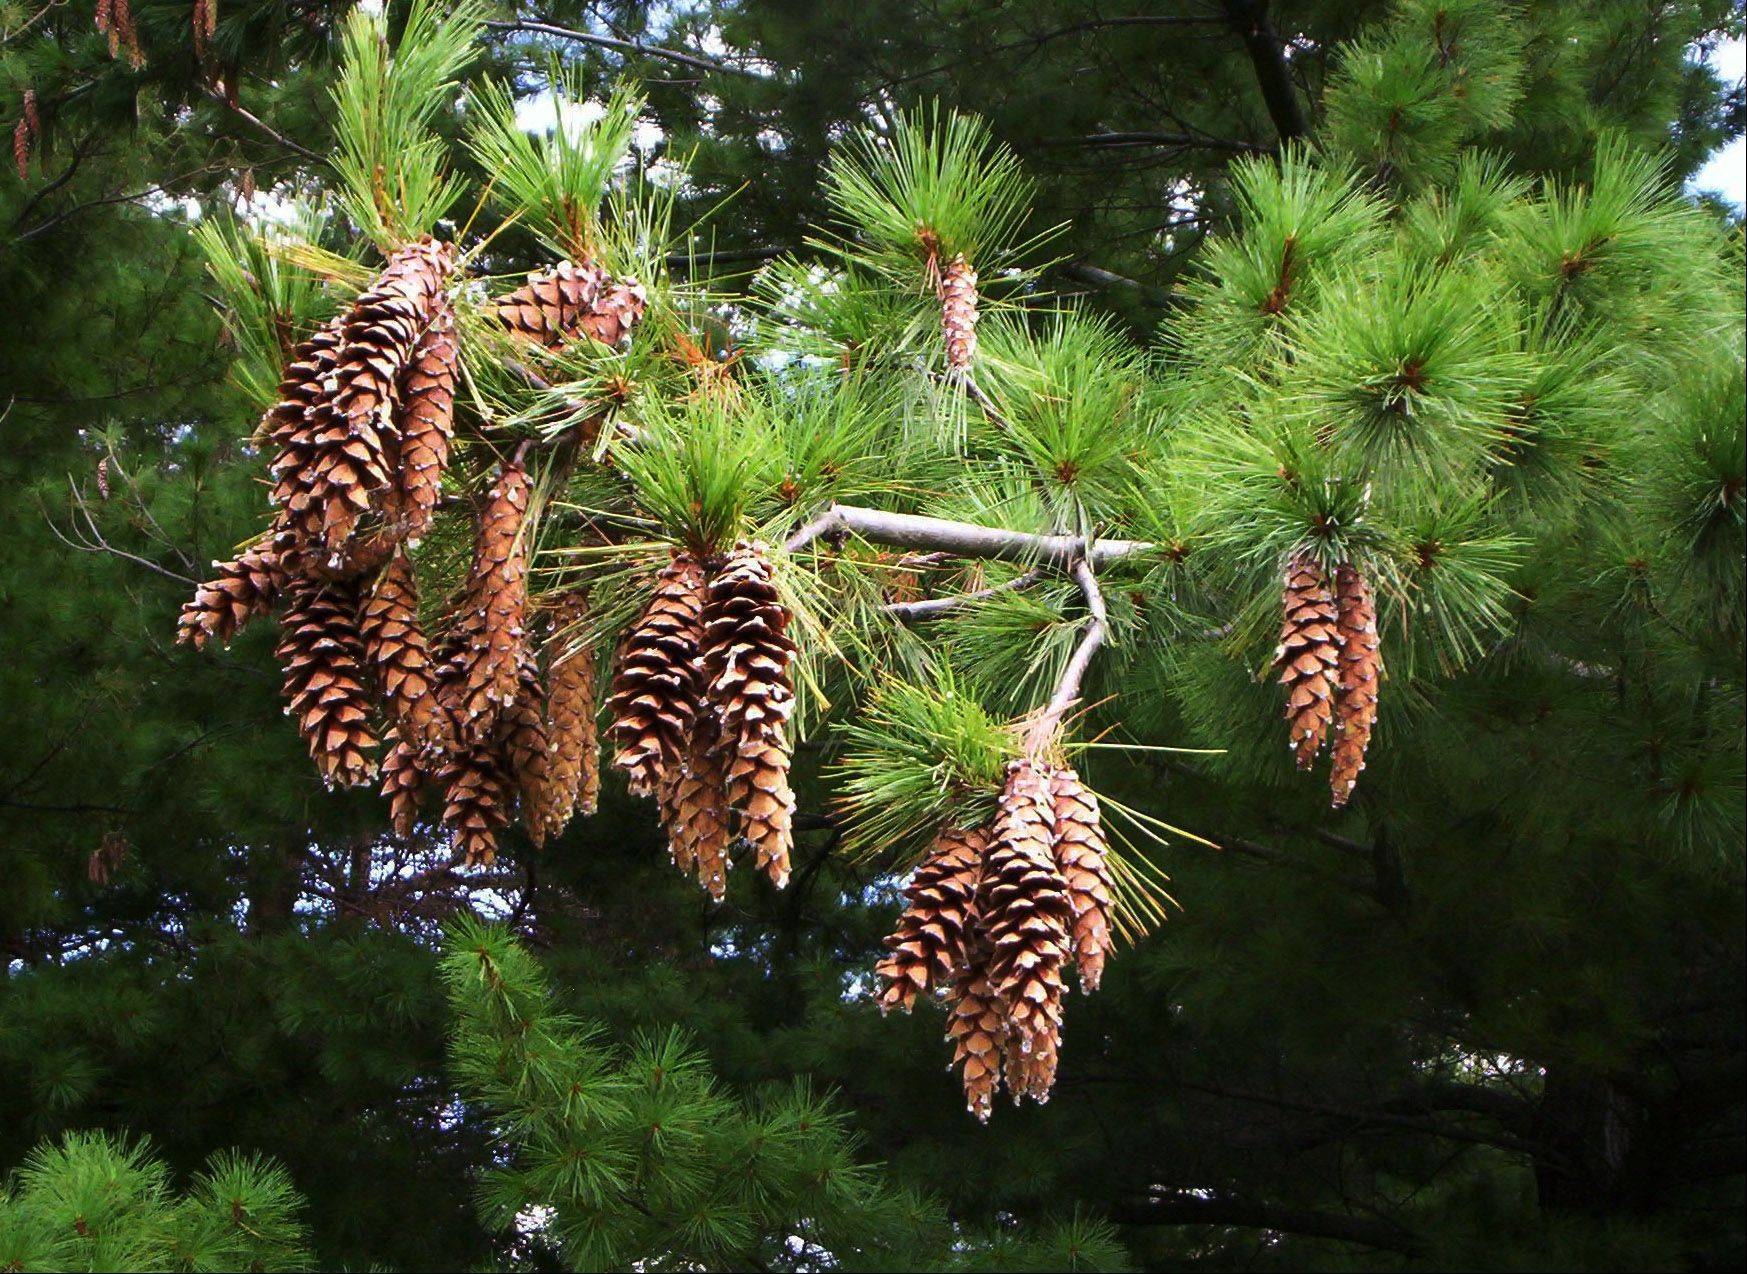 Pine cones in an evergreen tree at Independence Grove Forest Preserve near Linbertyville last October. The size and number of pine cones indicate the upcoming long winter.